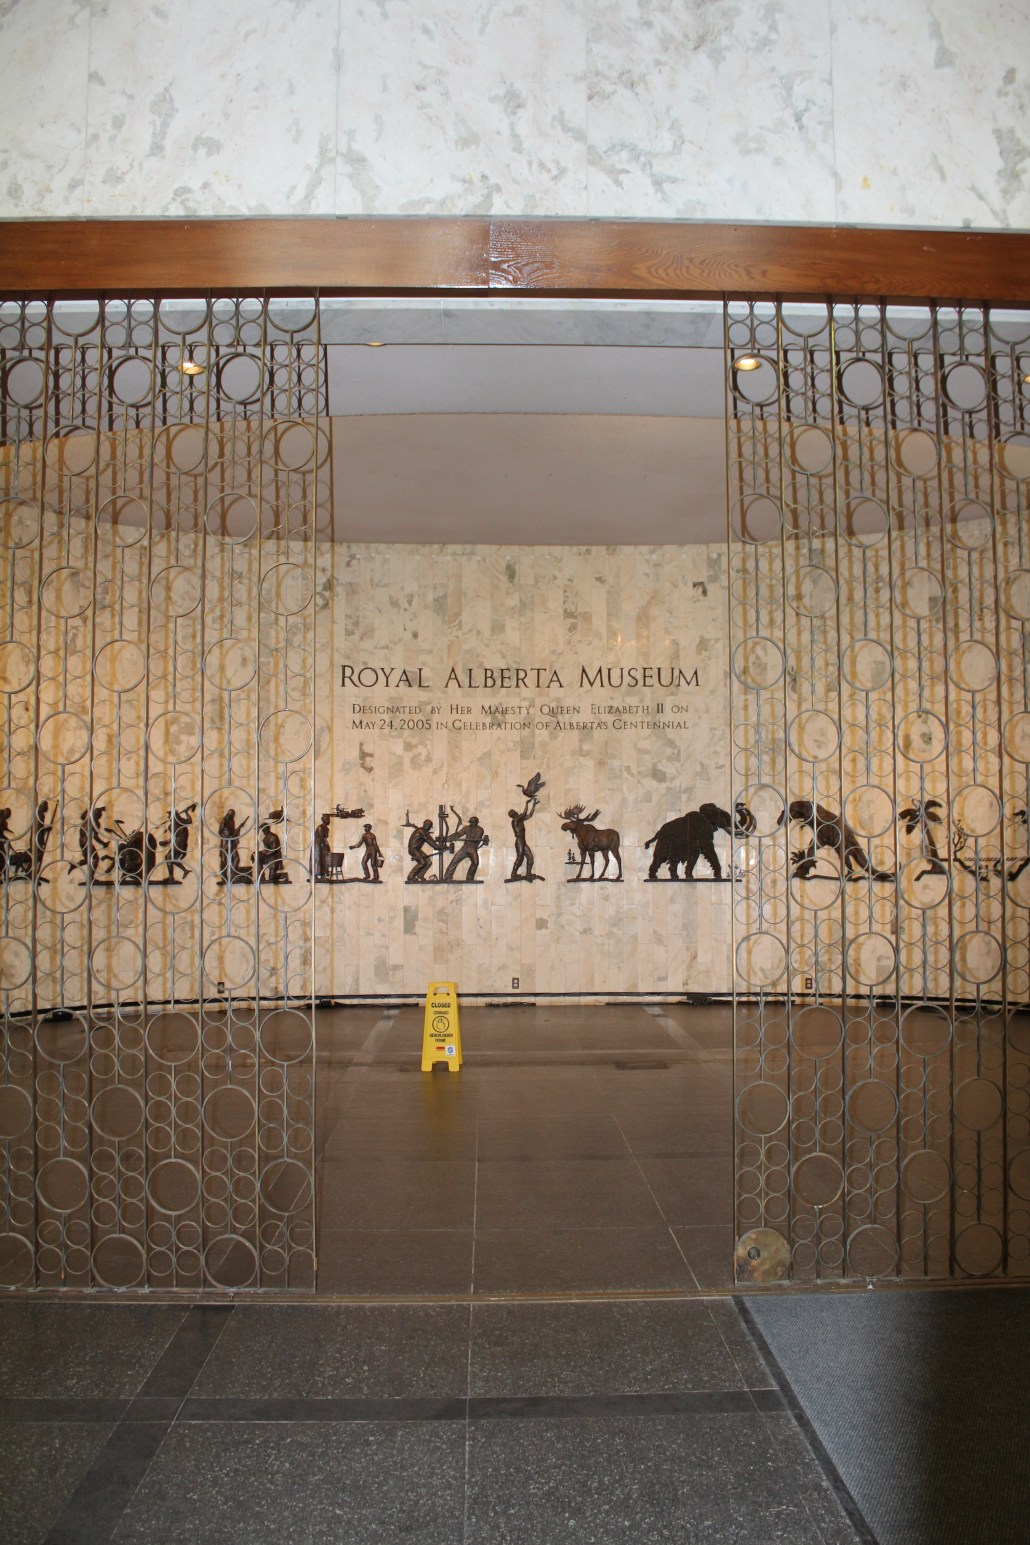 The Lobby of the Royal Alberta Museum, Glenora location. Photo courtesy of the author.